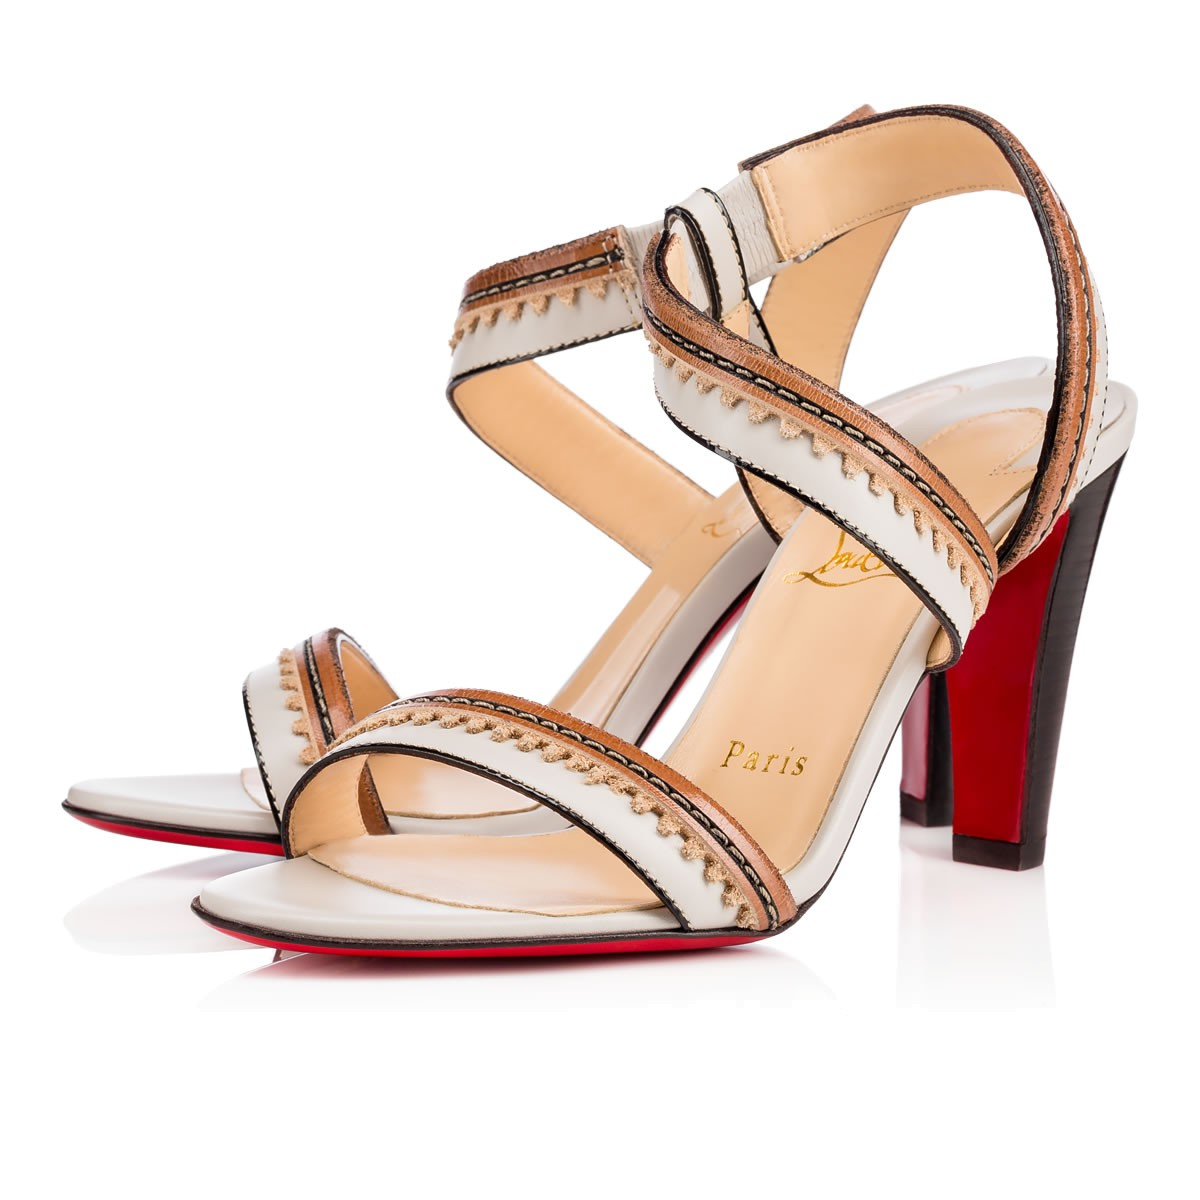 christian louboutin trepi leather 140mm red sole sandal